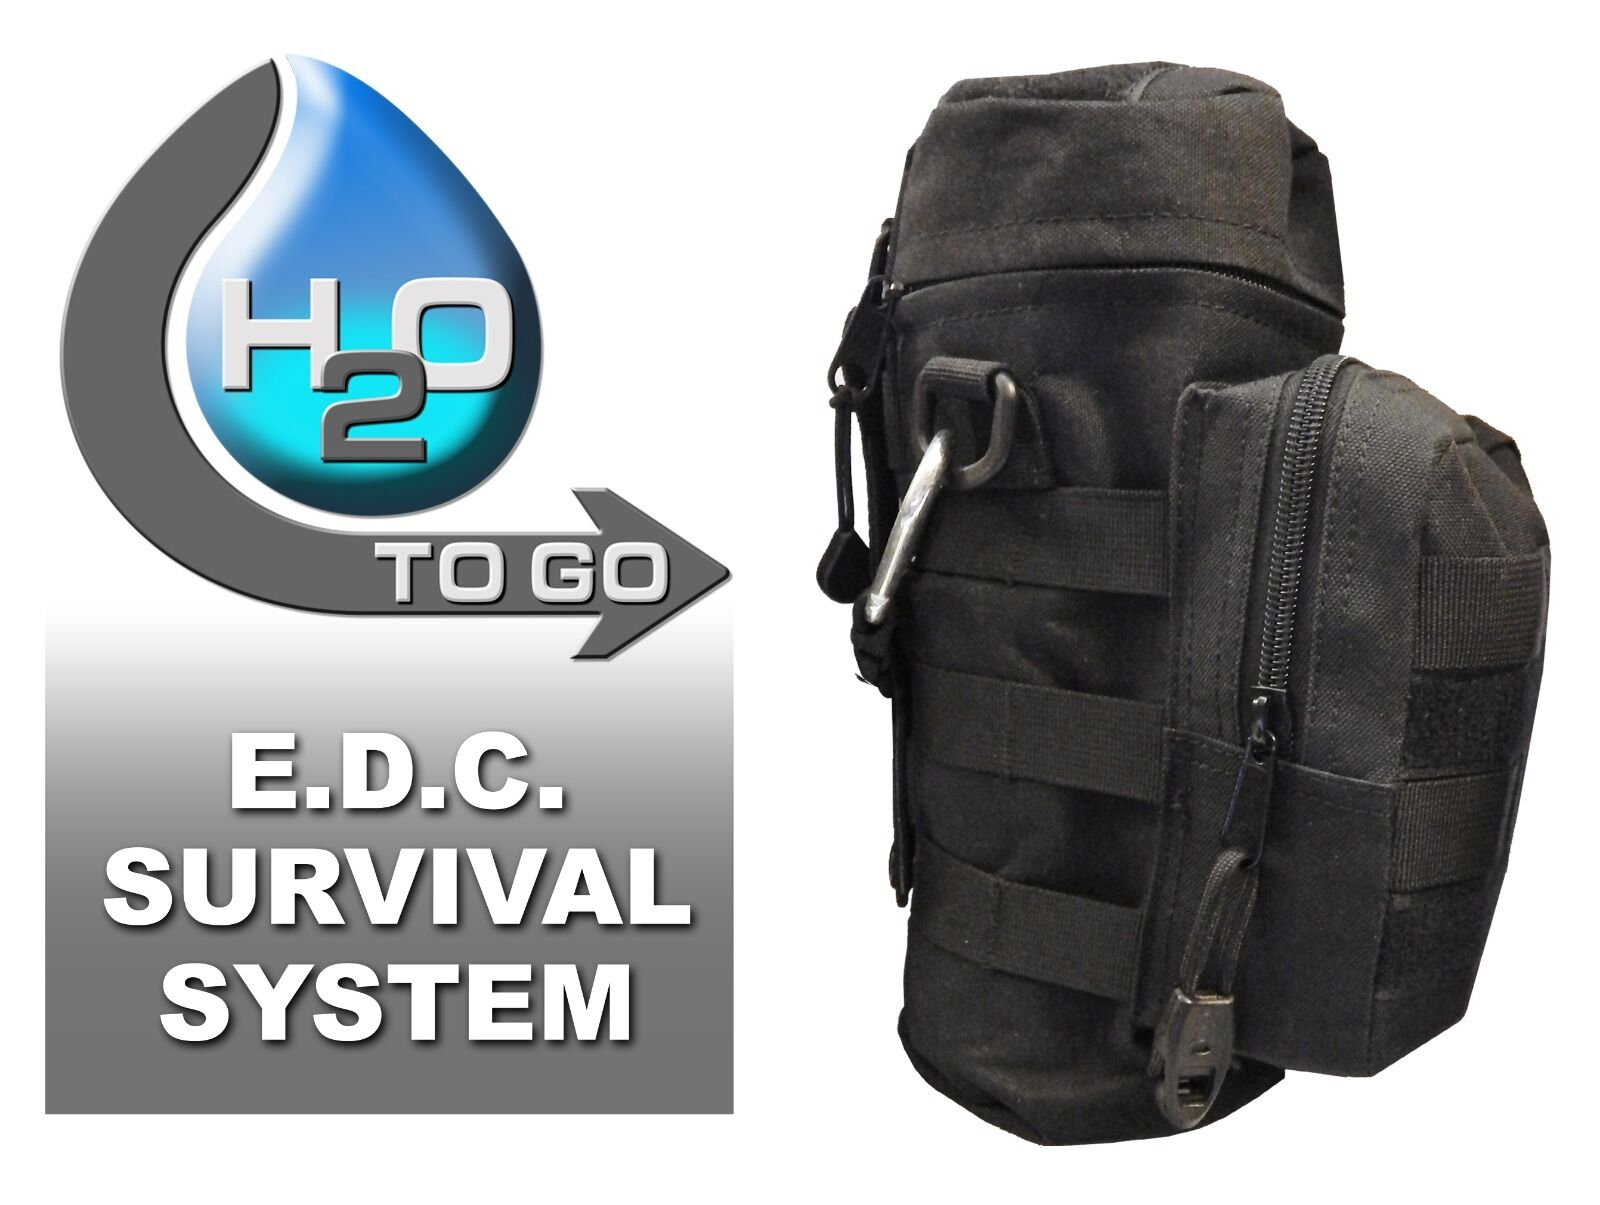 Discreet Prepper - H2O To Go E.D.C. Survival System - Light Weight